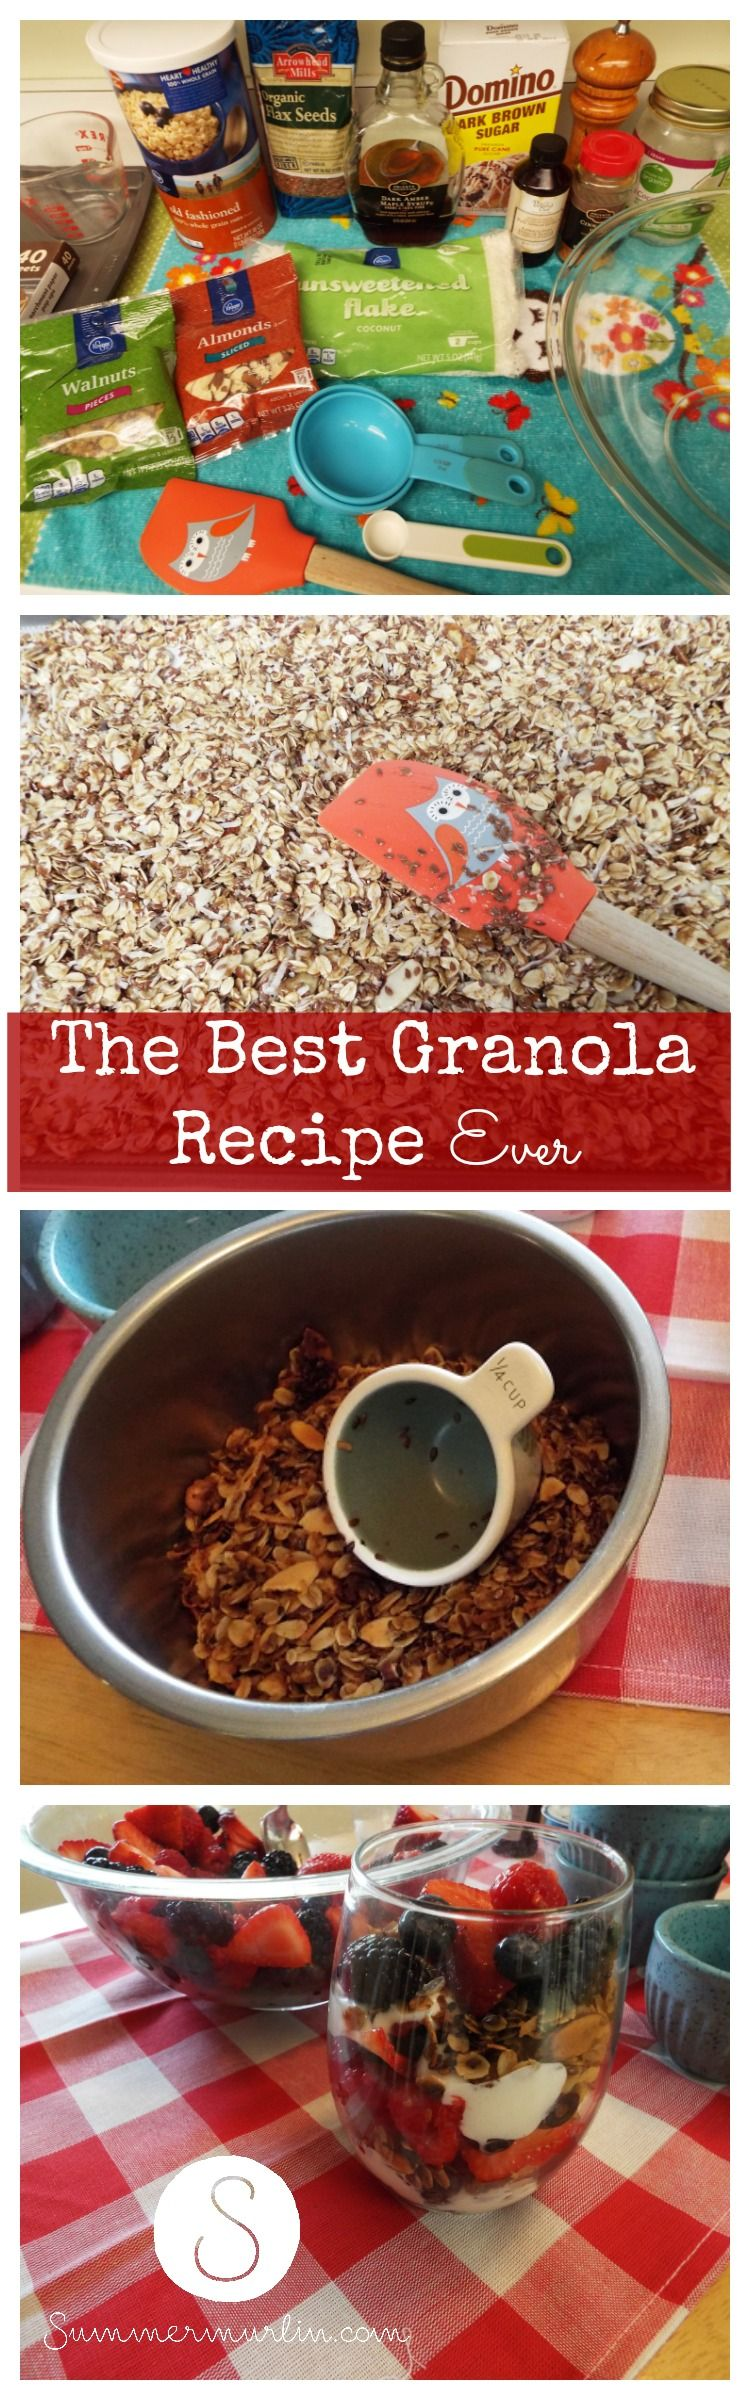 The Best Granola Recipe Ever